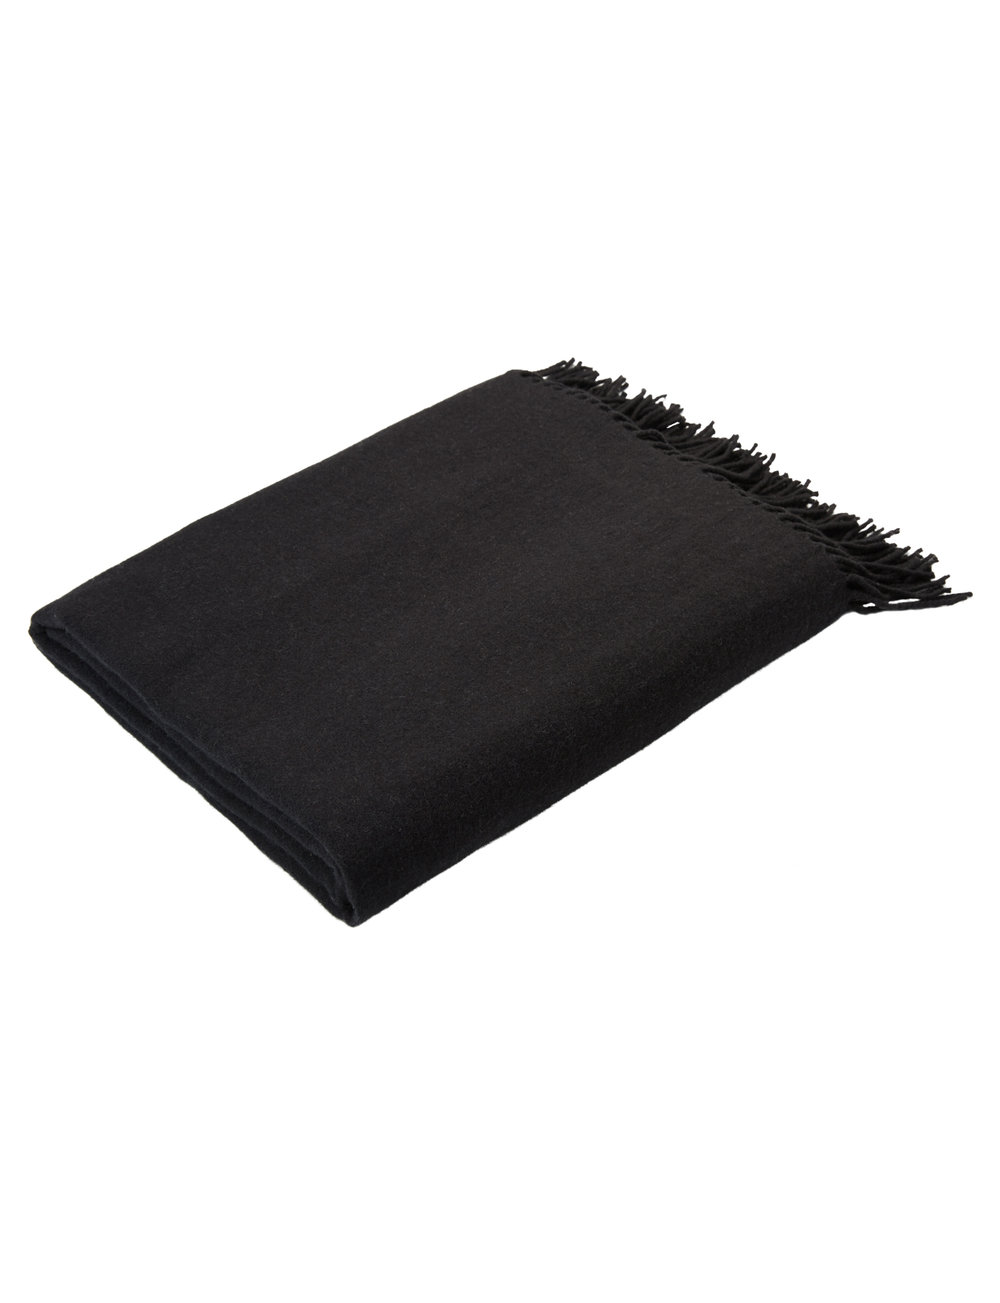 Cashmere Throw Black.jpg